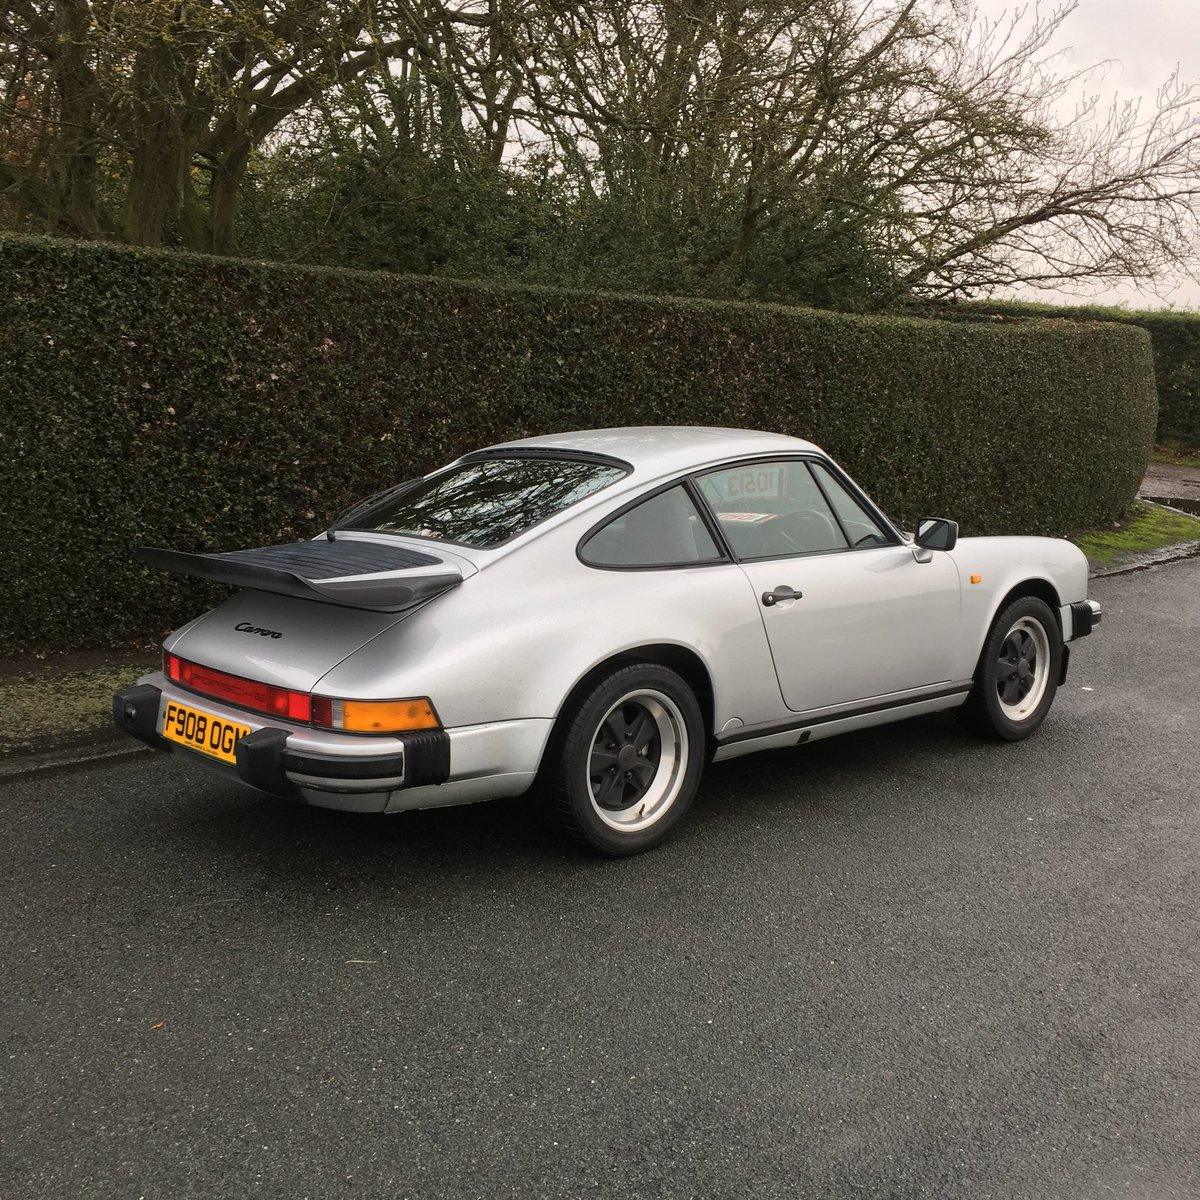 1989 RHD G50 3.2 Carrera Sport Coupe For Sale (picture 3 of 6)